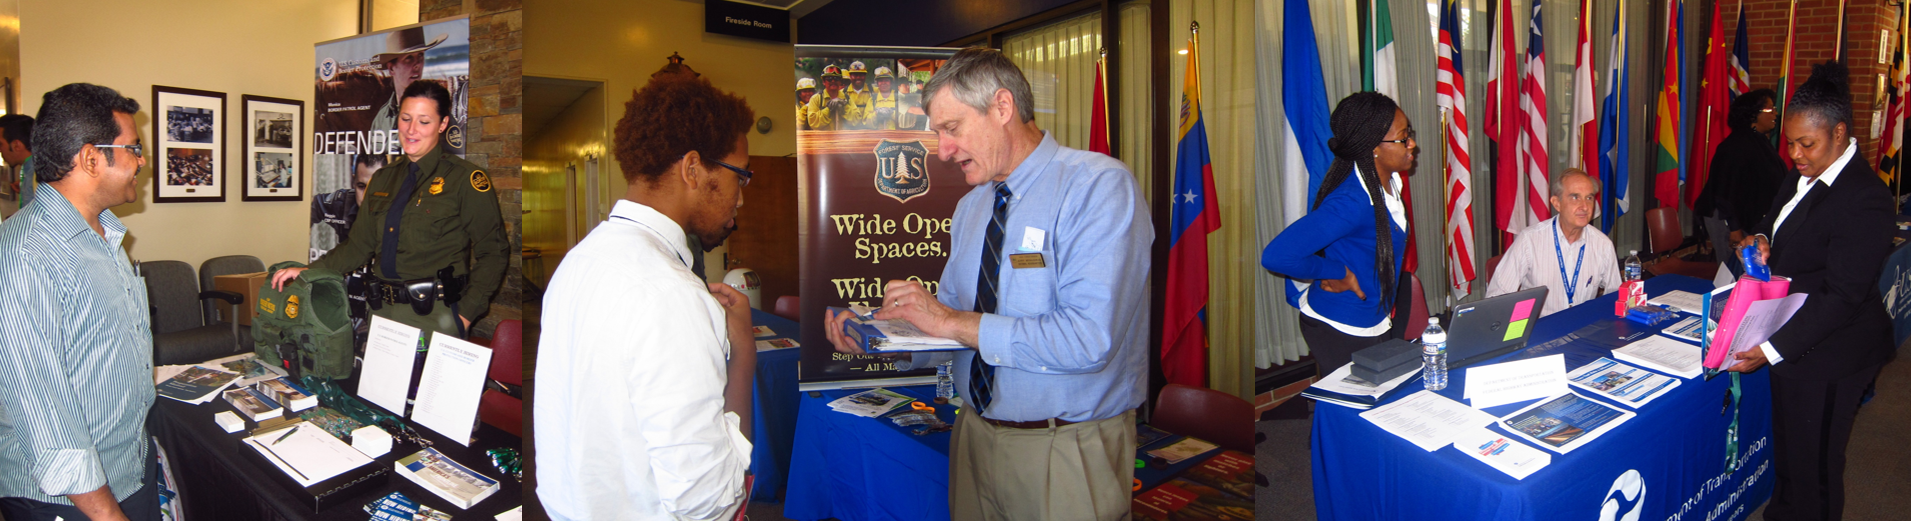 Collage of government recruiters speaking with attendees of a FAPAC career fair